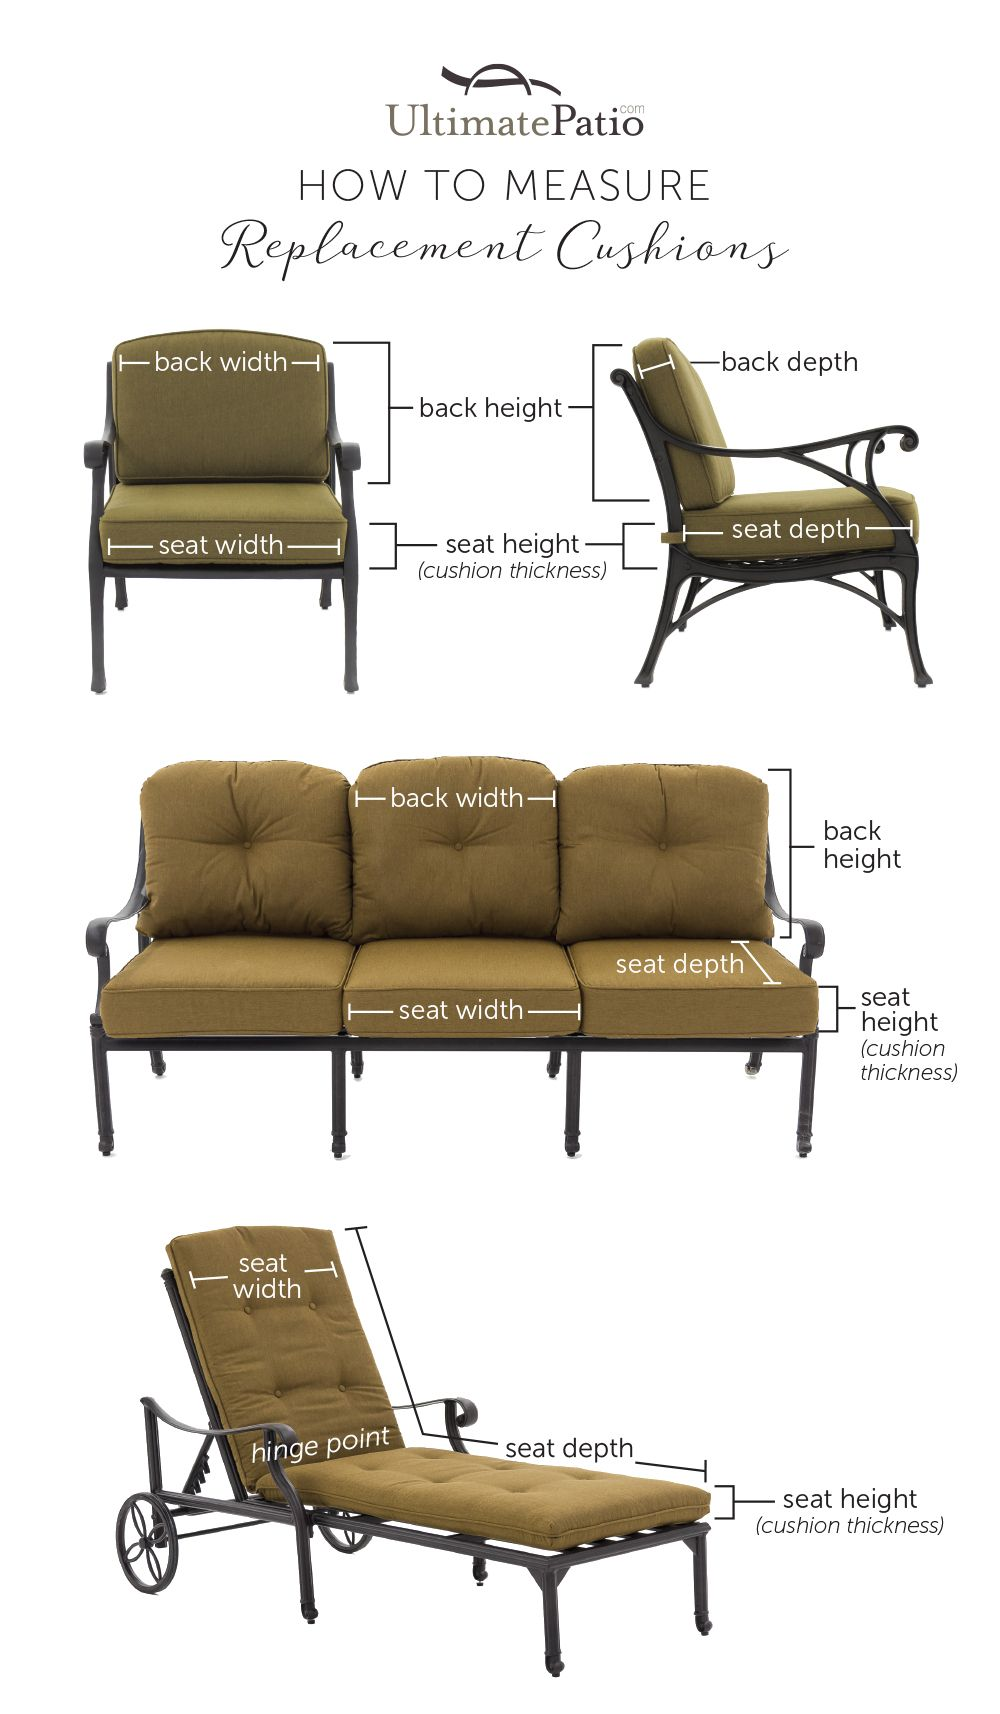 How To Measure Outdoor Replacement Cushions Bbqguys Outdoor Furniture Ideas Patio Chairs Patio Seat Cushions Beautiful Outdoor Furniture